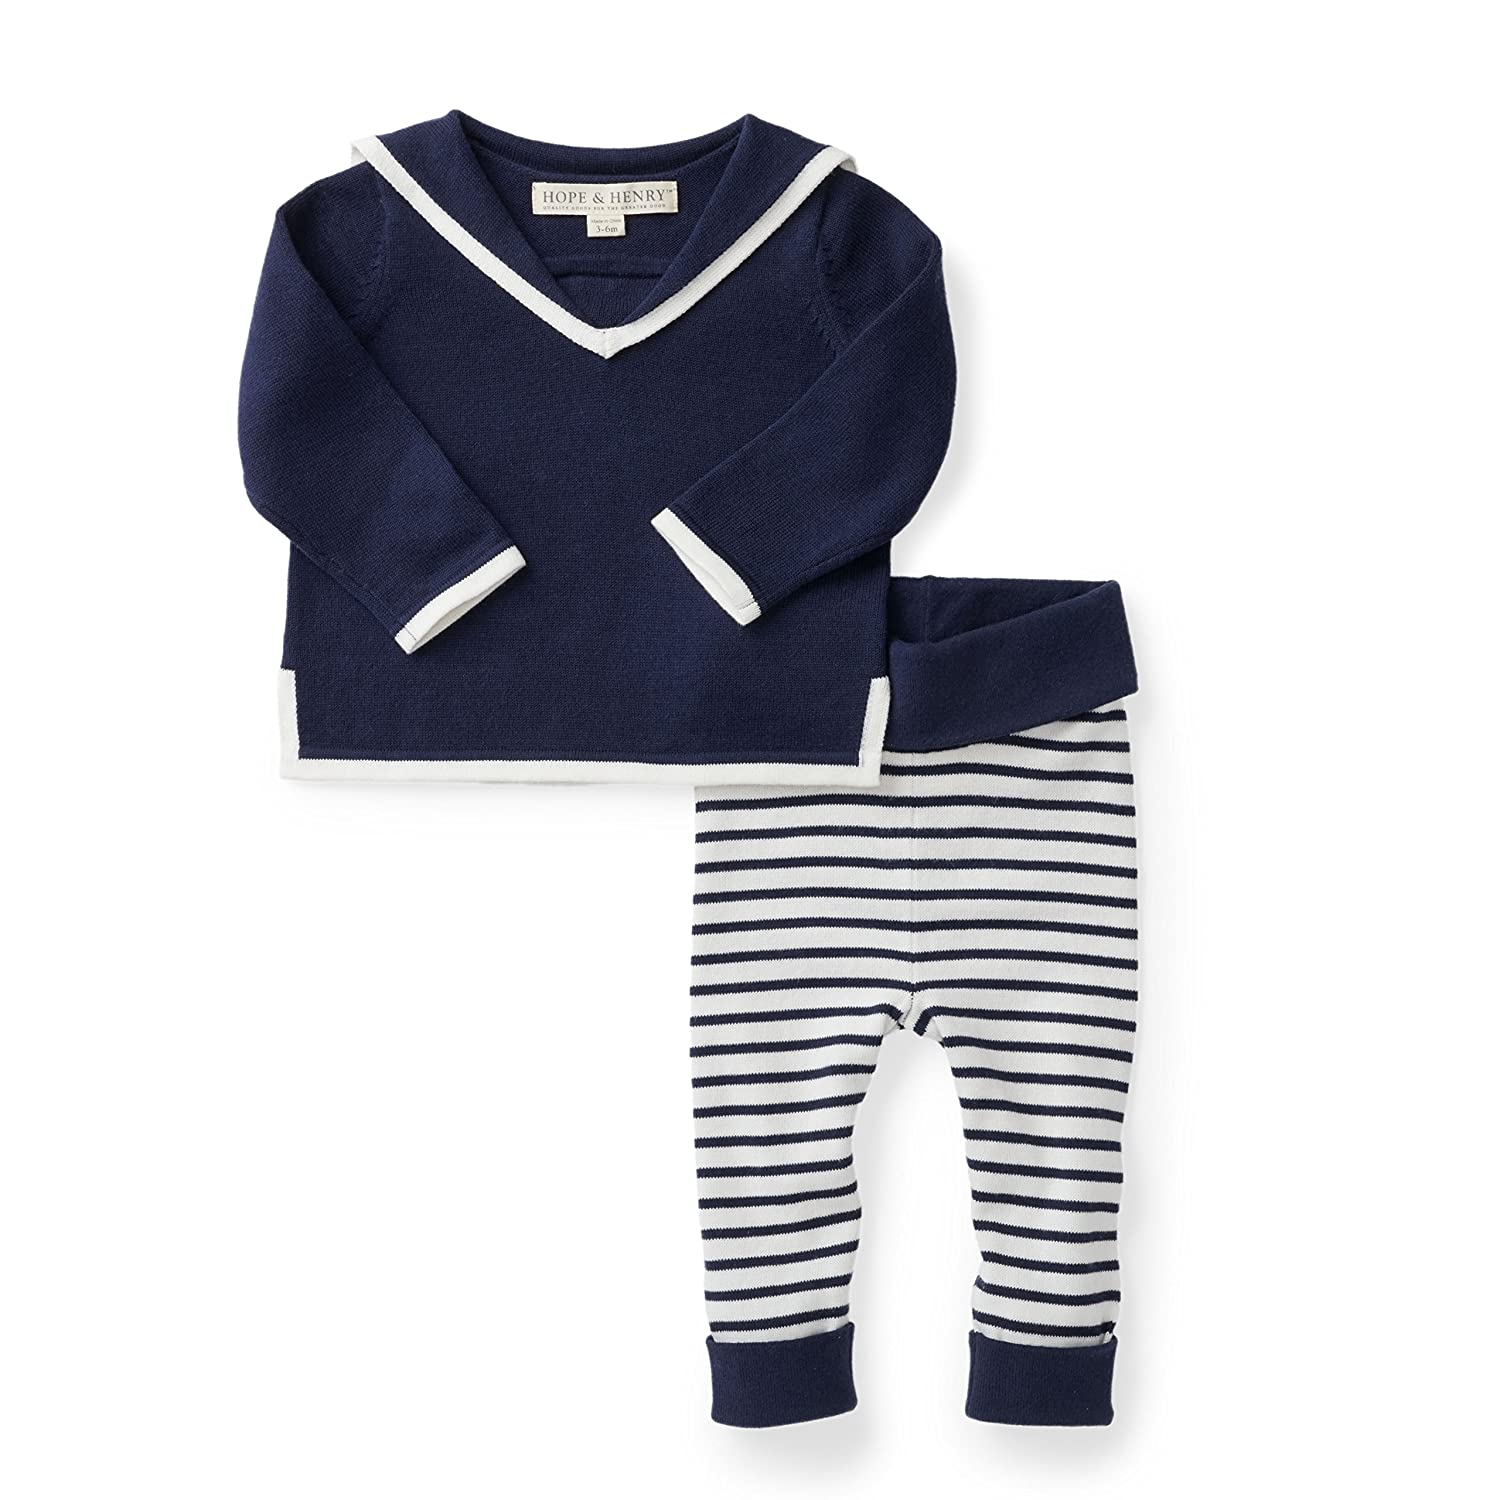 Hope & Henry Layette Two Piece Sweater Set 18SPL123Parent